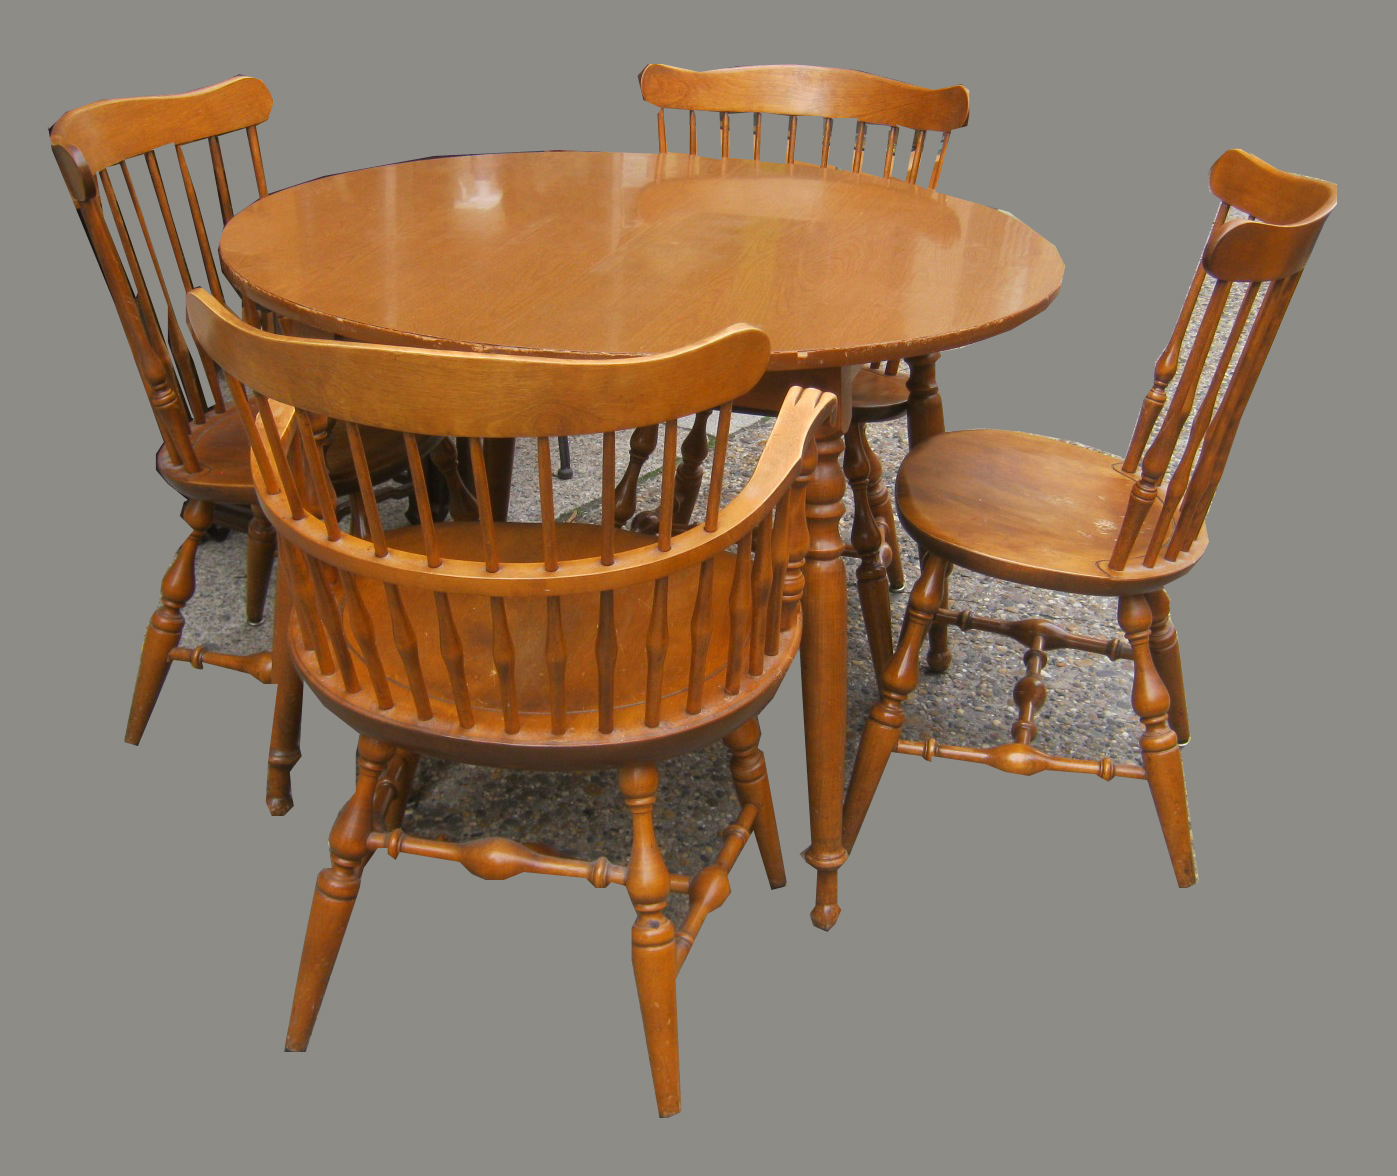 Country Kitchen Table And Chairs: Uhuru Furniture & Collectibles: Country Kitchen Table W/4